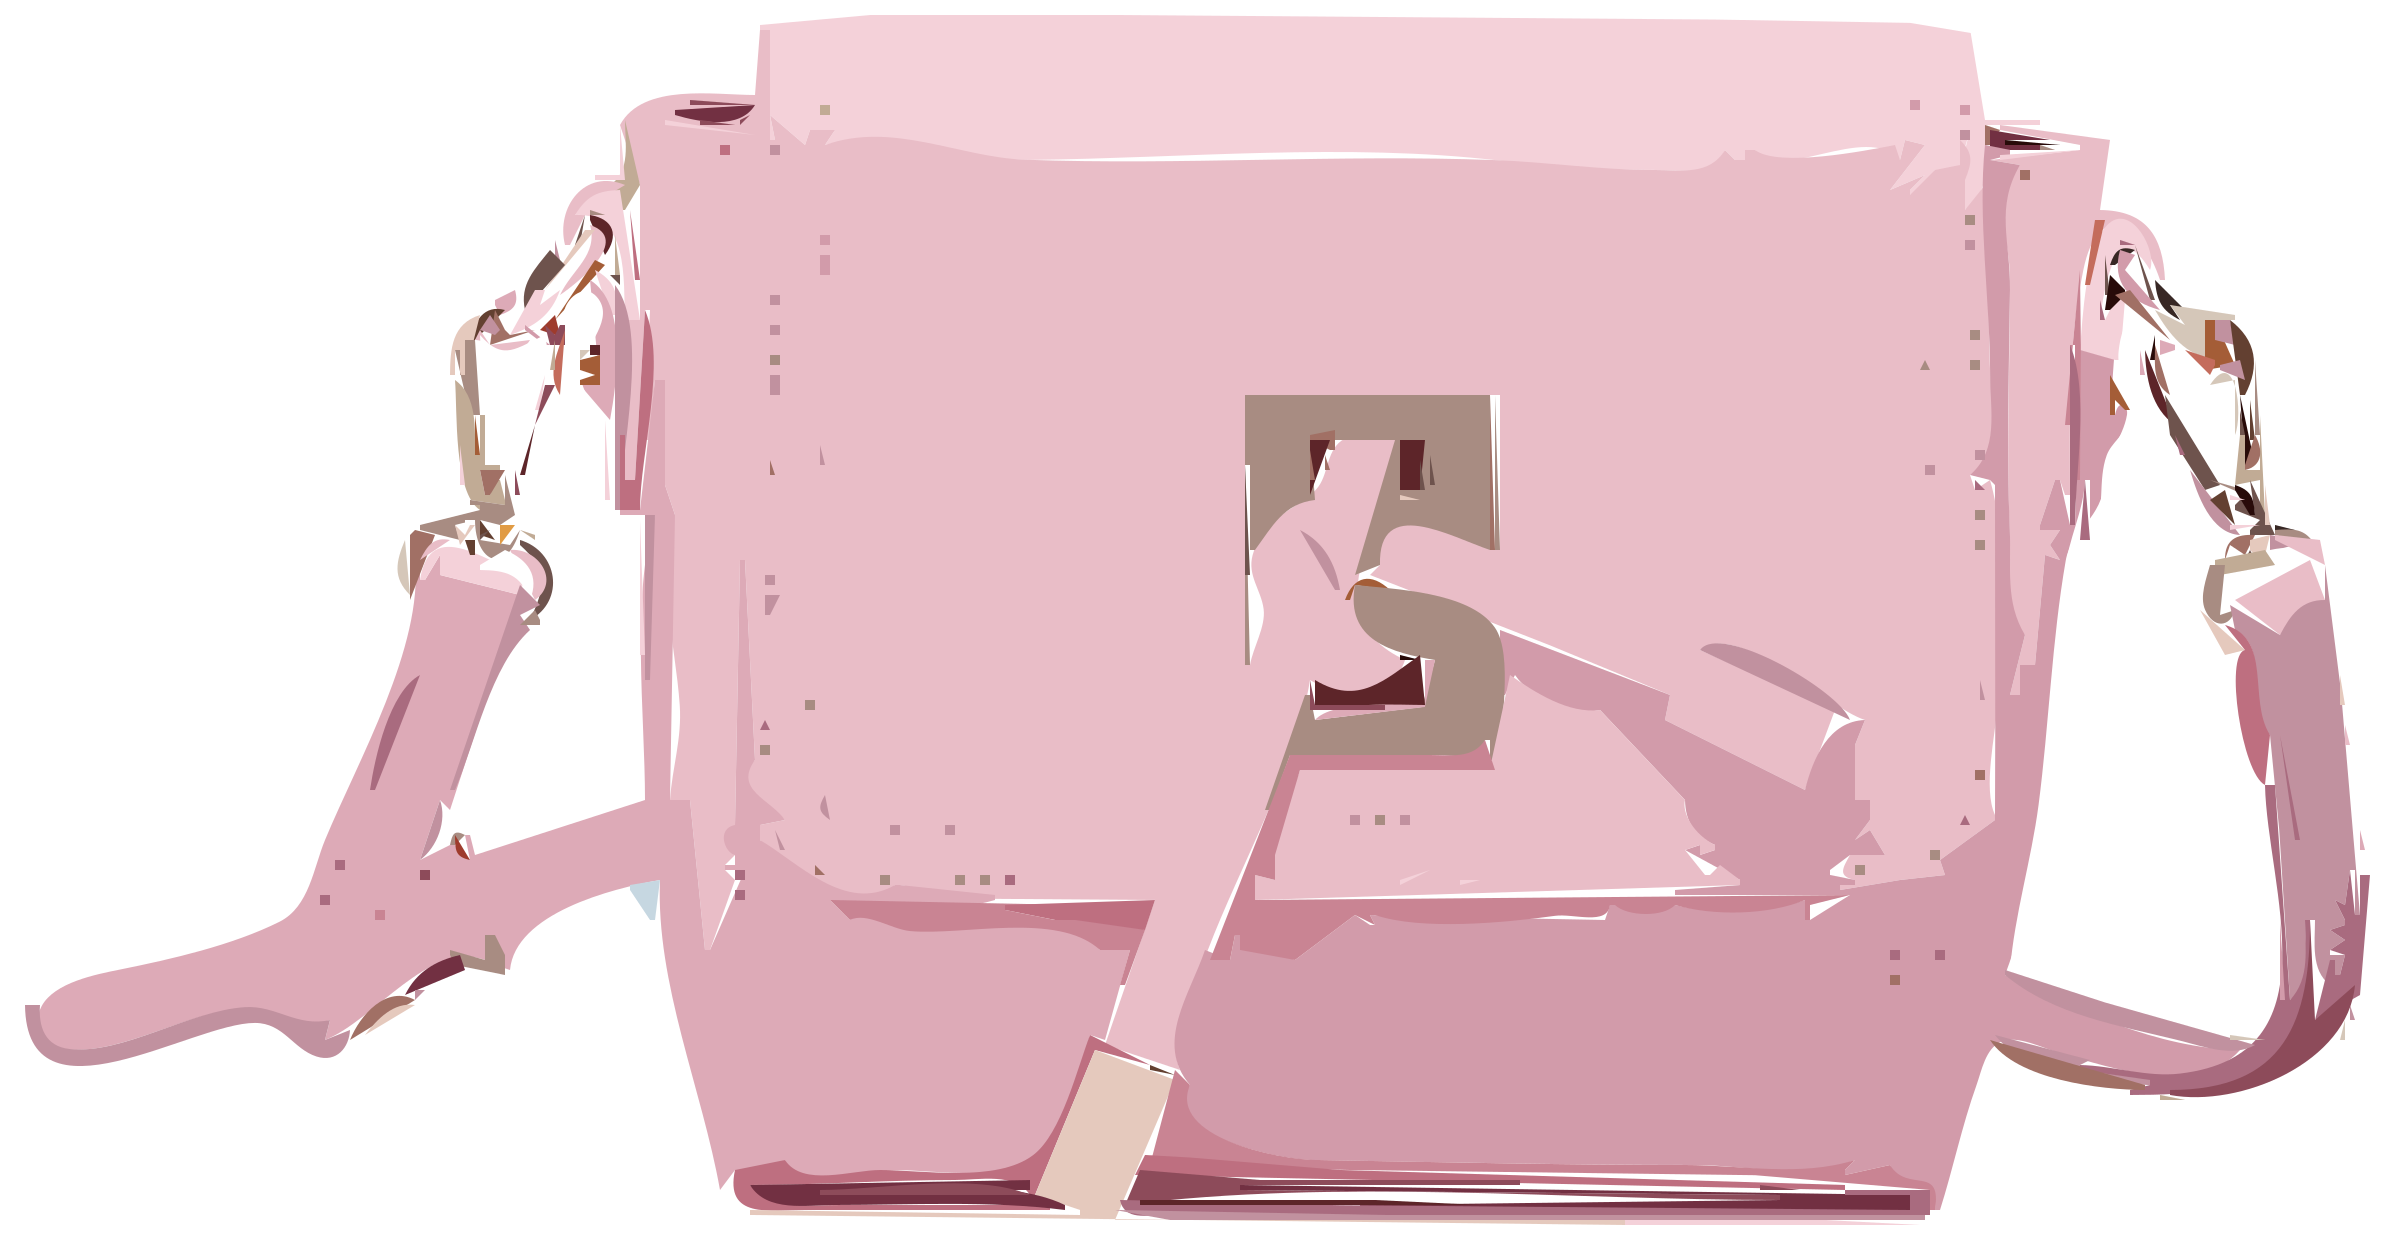 Pink Leather Handbag without logo by rejon